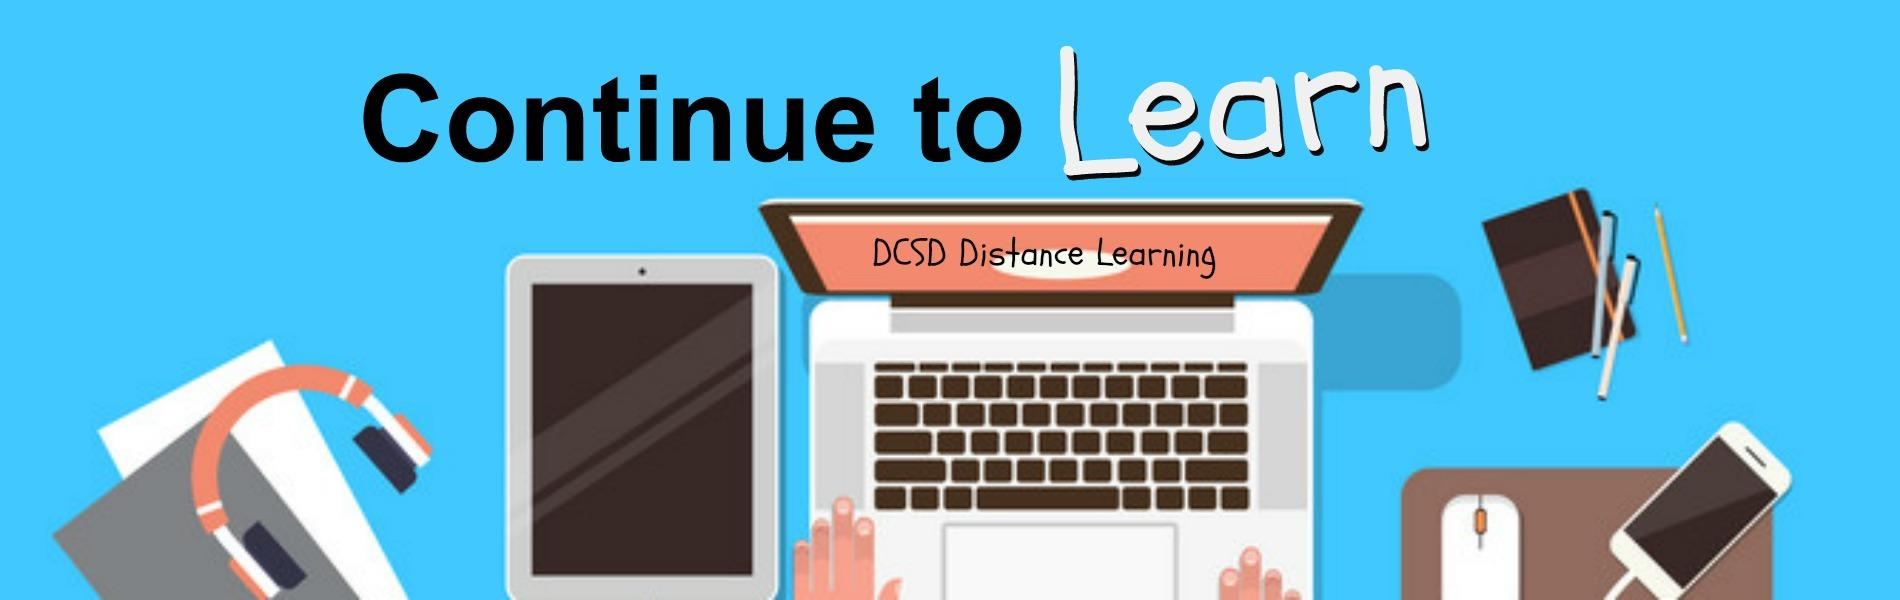 DCSD Distance learning